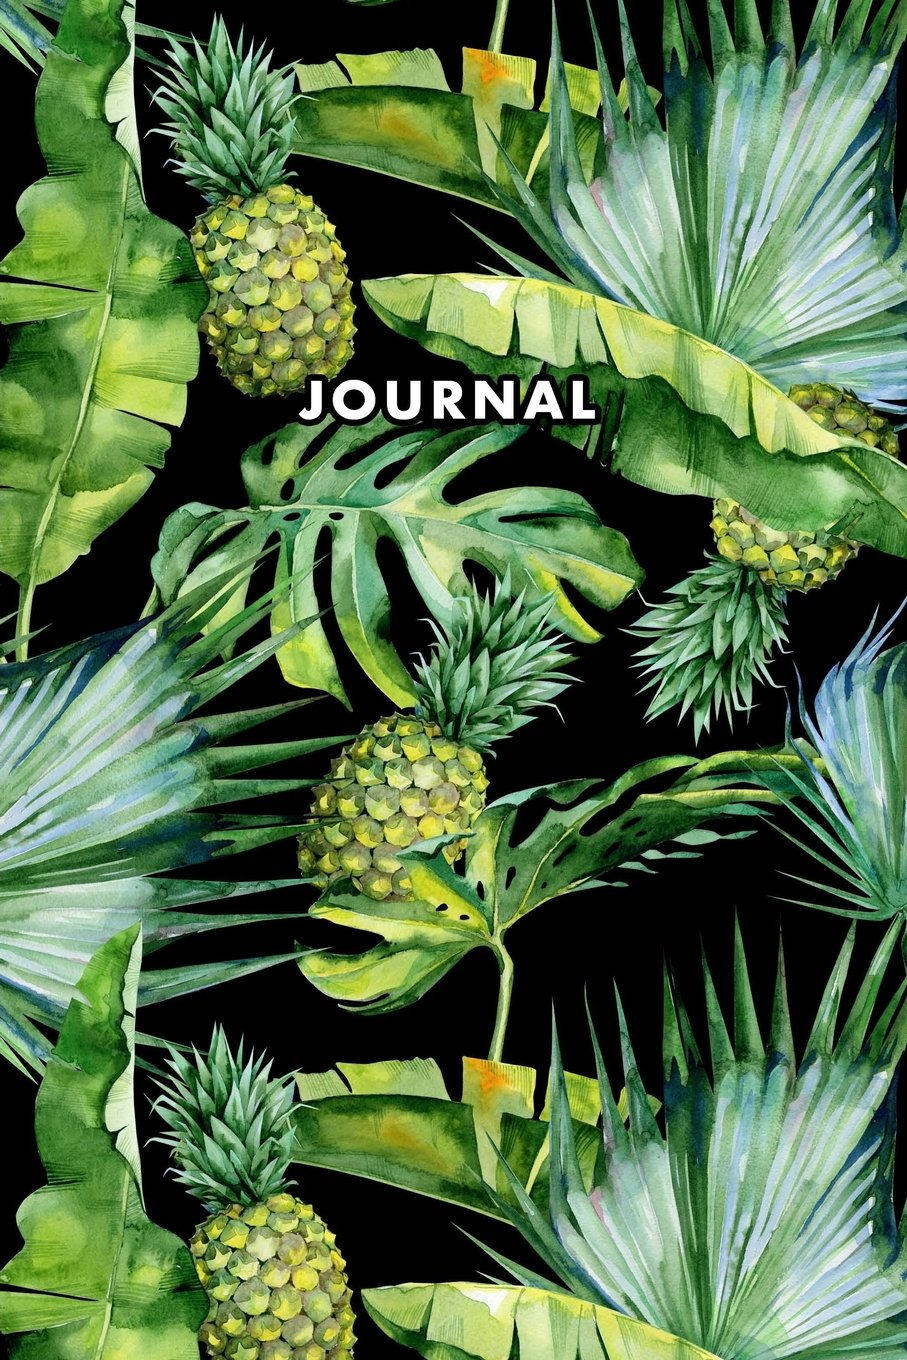 Download Journal: Bullet Journal Tropical Trees Pineapples Watercolor Notebook for Women Girls Dotted Grid Pages Planner Sketchbook Diary (6 x 9) Softbound Cover (Bullet Journals) ebook